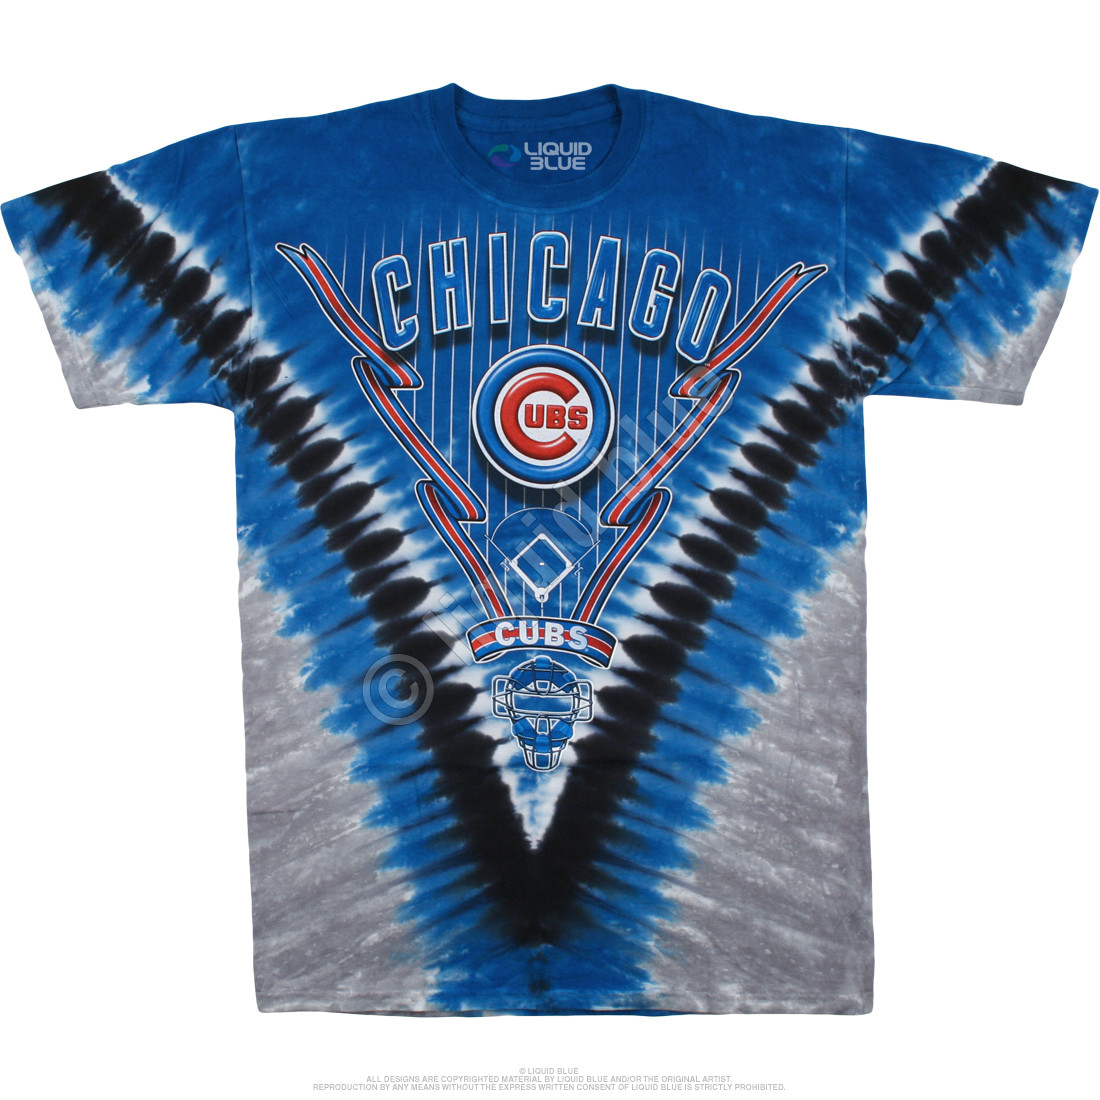 MLB Chicago Cubs V Tie-Dye T-Shirt Tee Liquid Blue 03d6d9817241